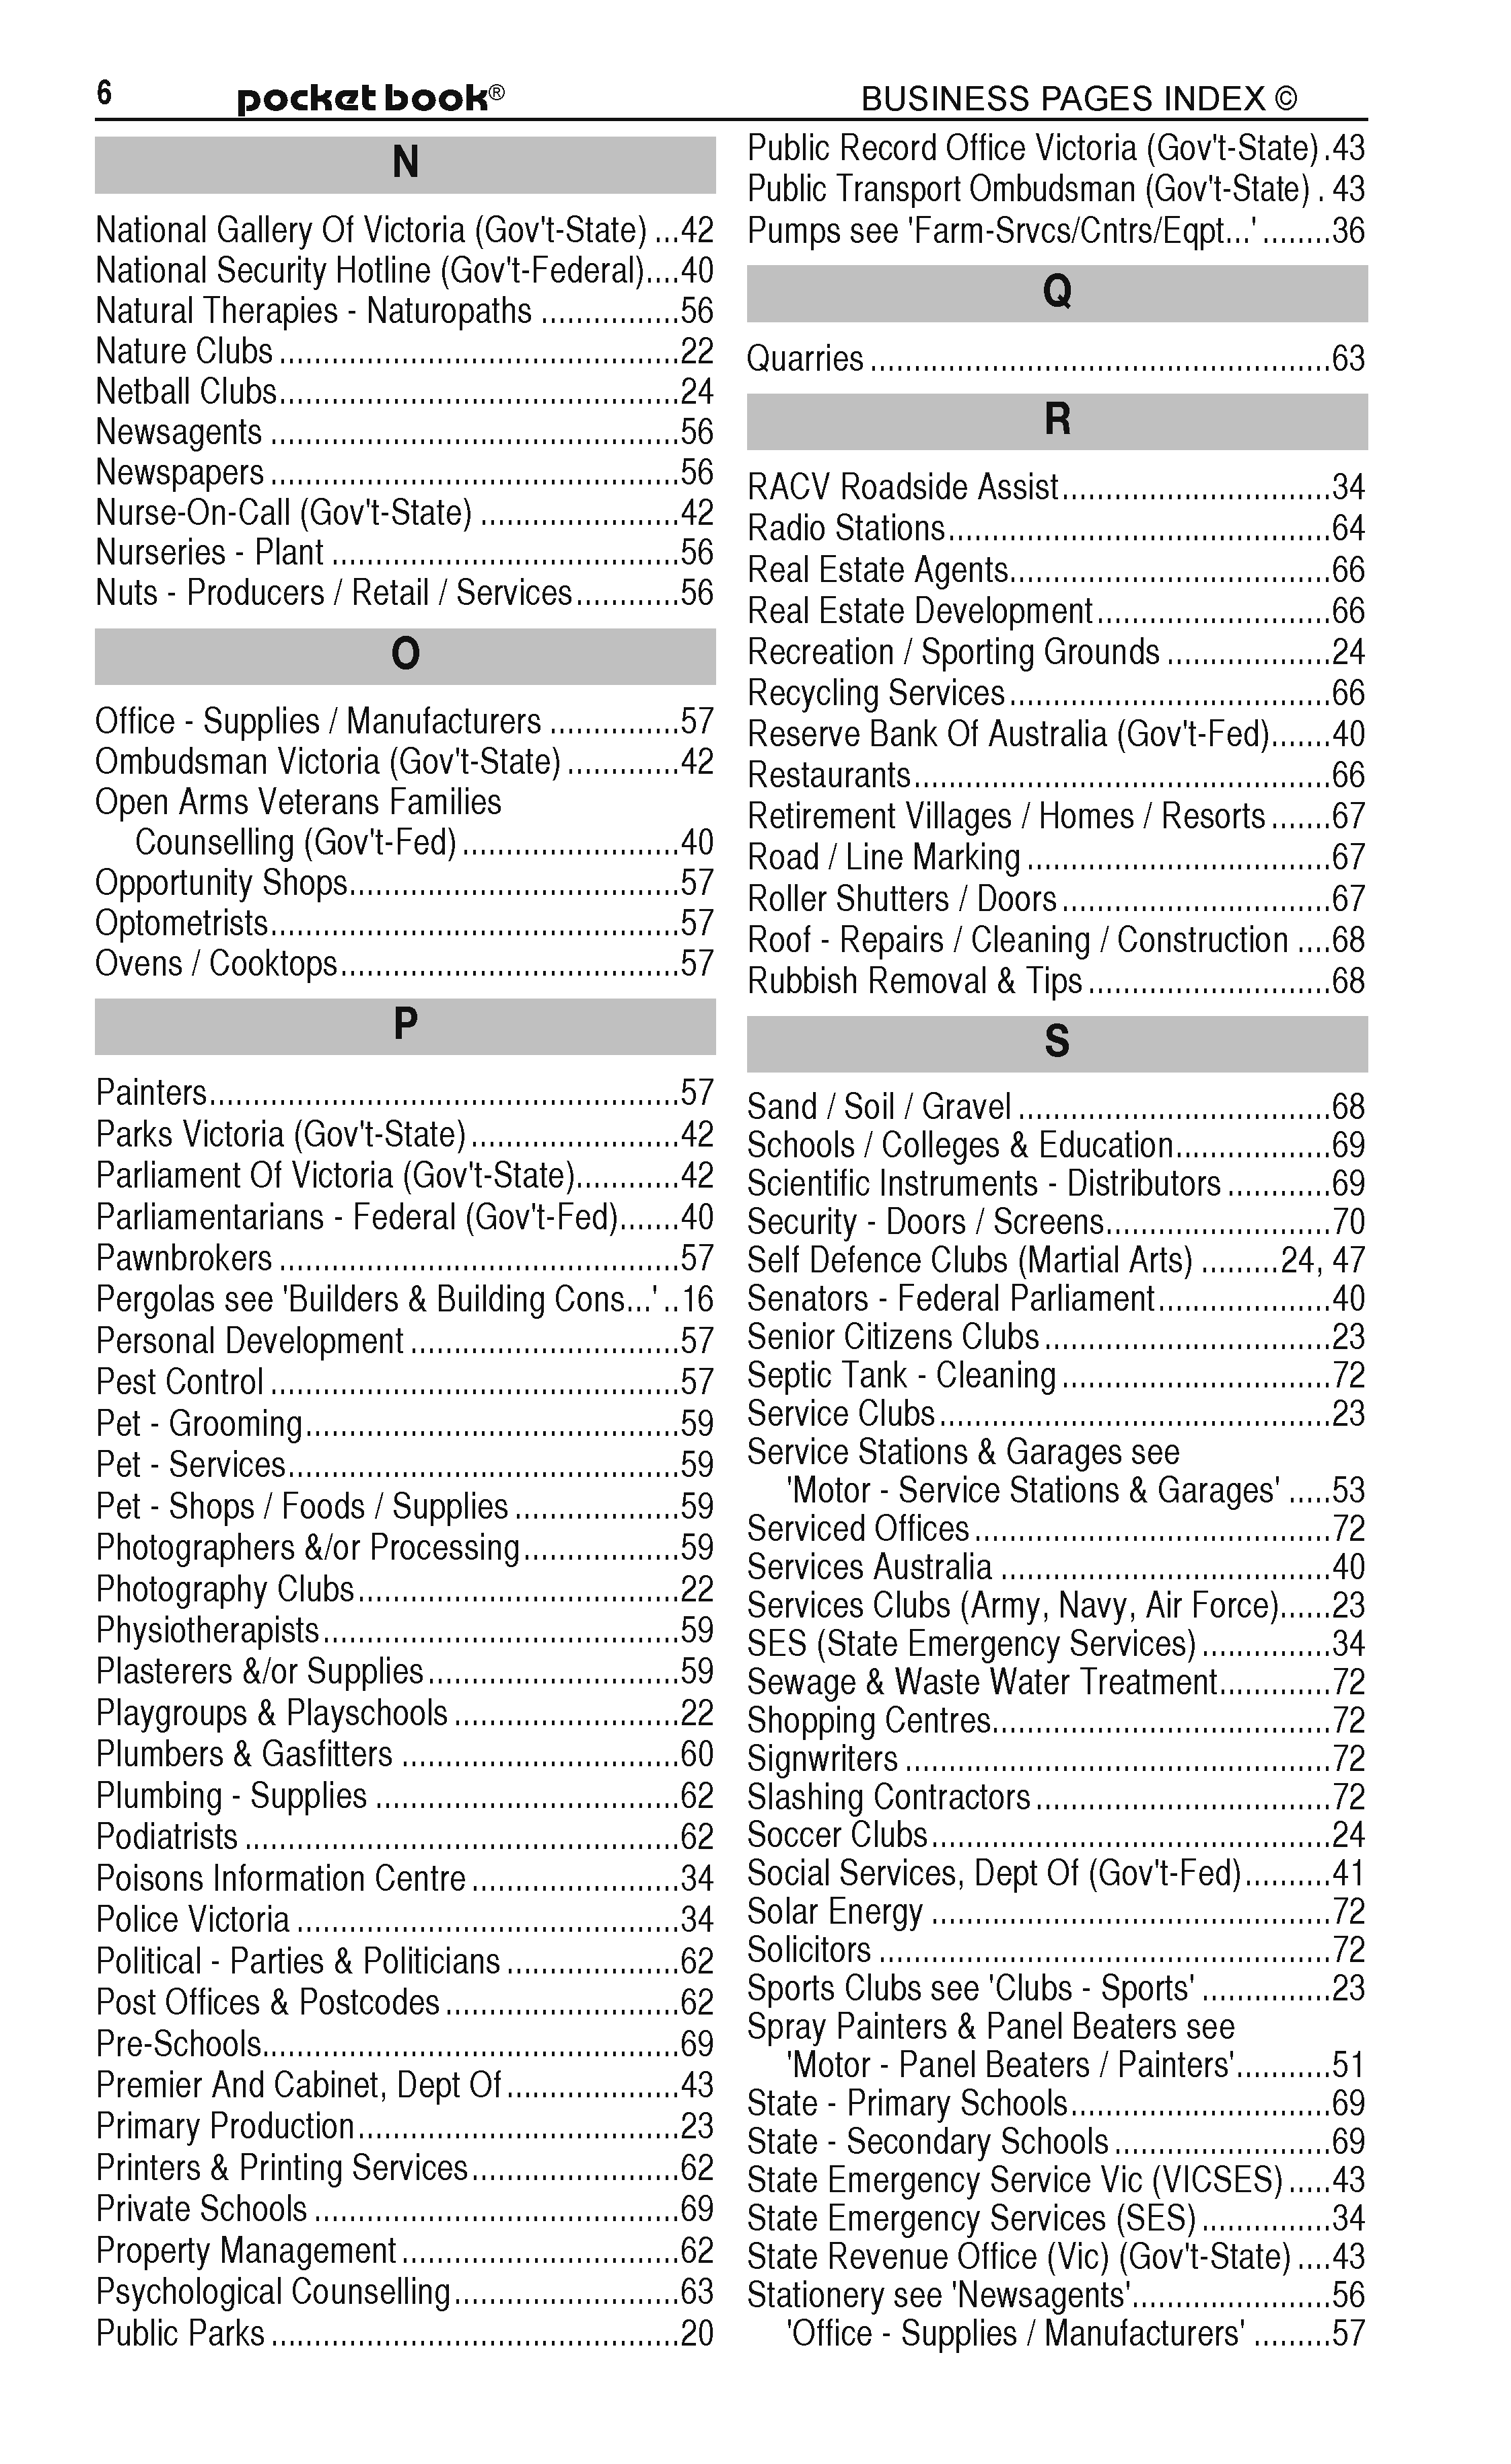 Superior Bookkeeping & Payroll | Bookkeeping Services in Darley | PBezy Pocket Books local directories - page 6